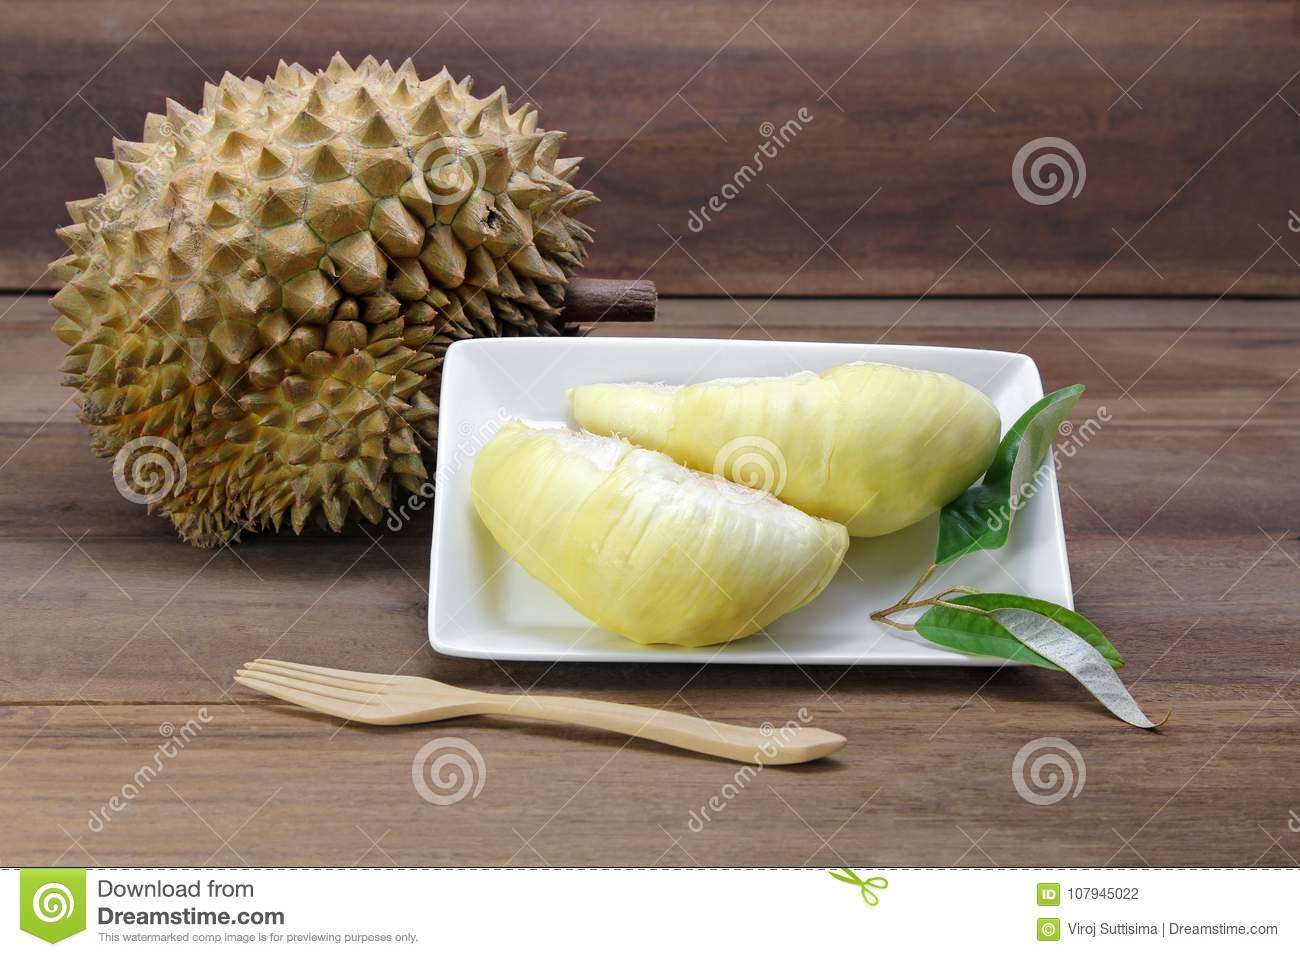 Durian fruits and yellow flesh durian on white dish with durian leaf, wooden background.